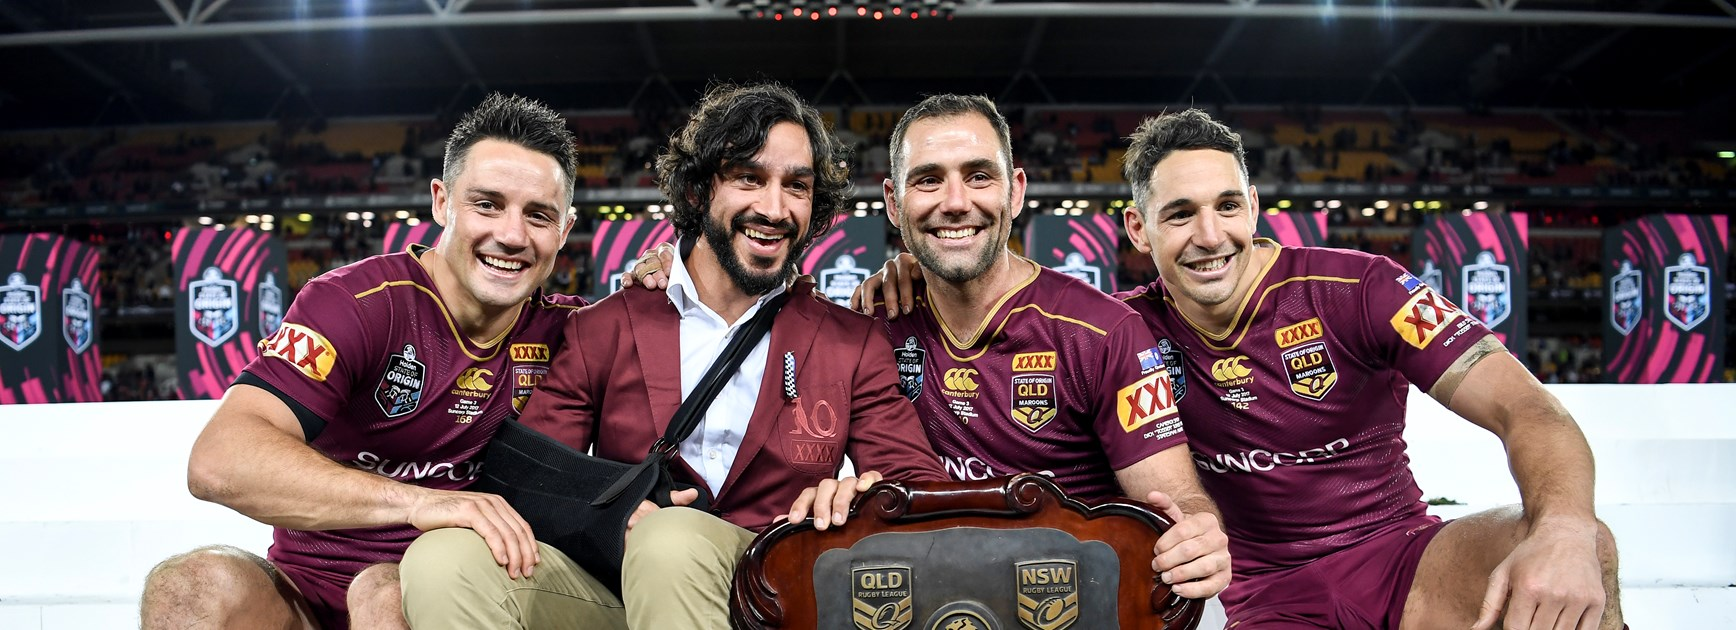 Queensland veterans Cooper Cronk, Johnathan Thurston, Cameron Smith and Billy Slater.